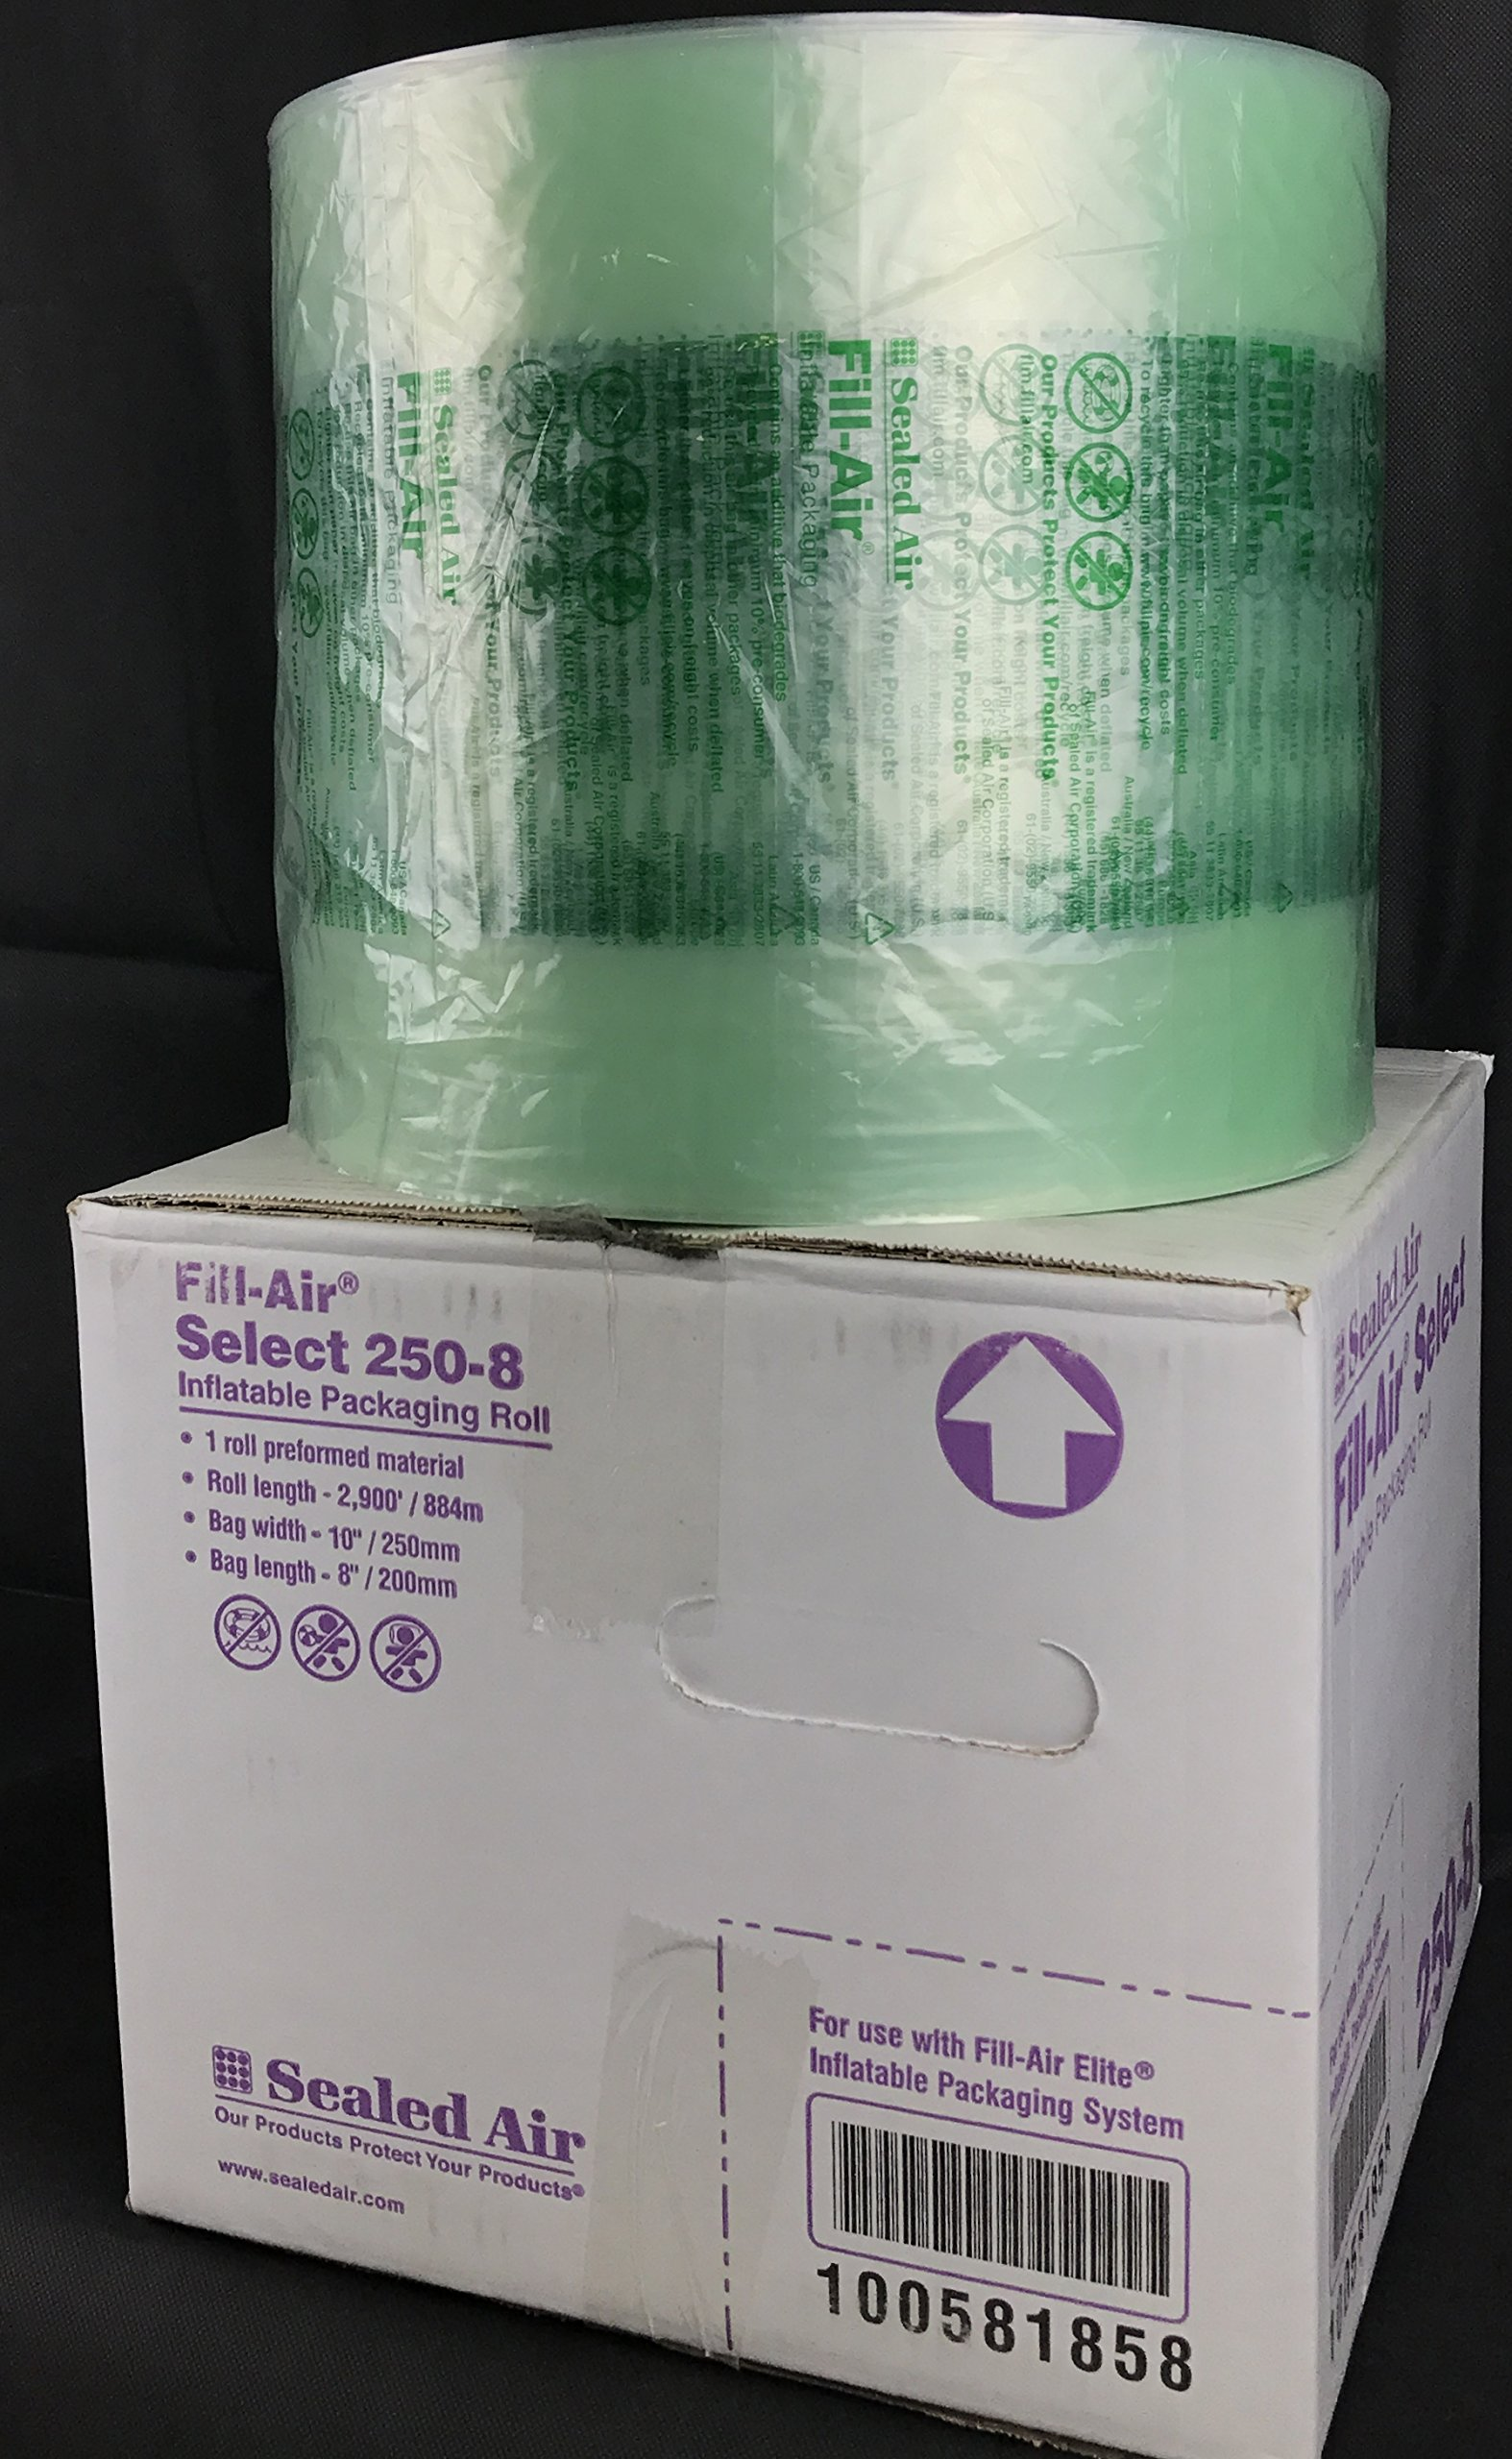 Sealed Air 250-8 Fill-Air Select 10'' x 8'' Inflatable Packaging Roll 2900' Bubble by Sealed Air